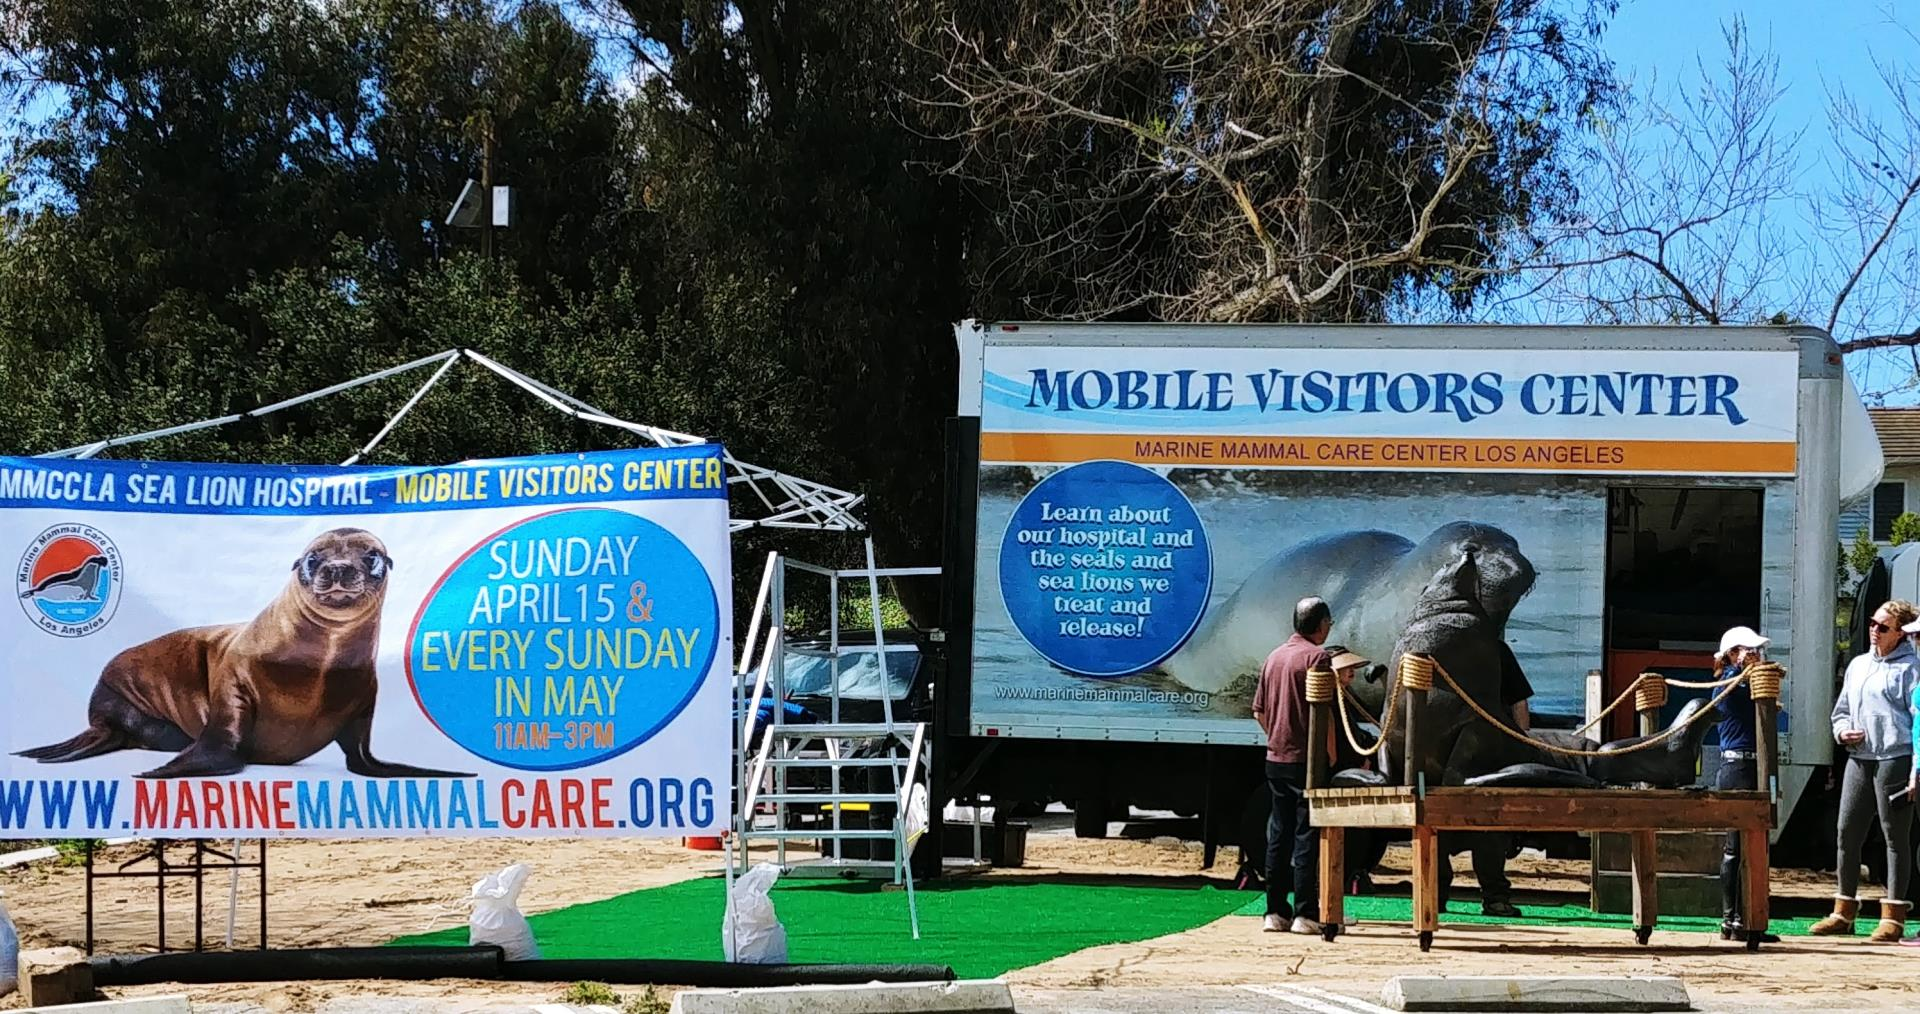 RHE Mobile Visitors Center